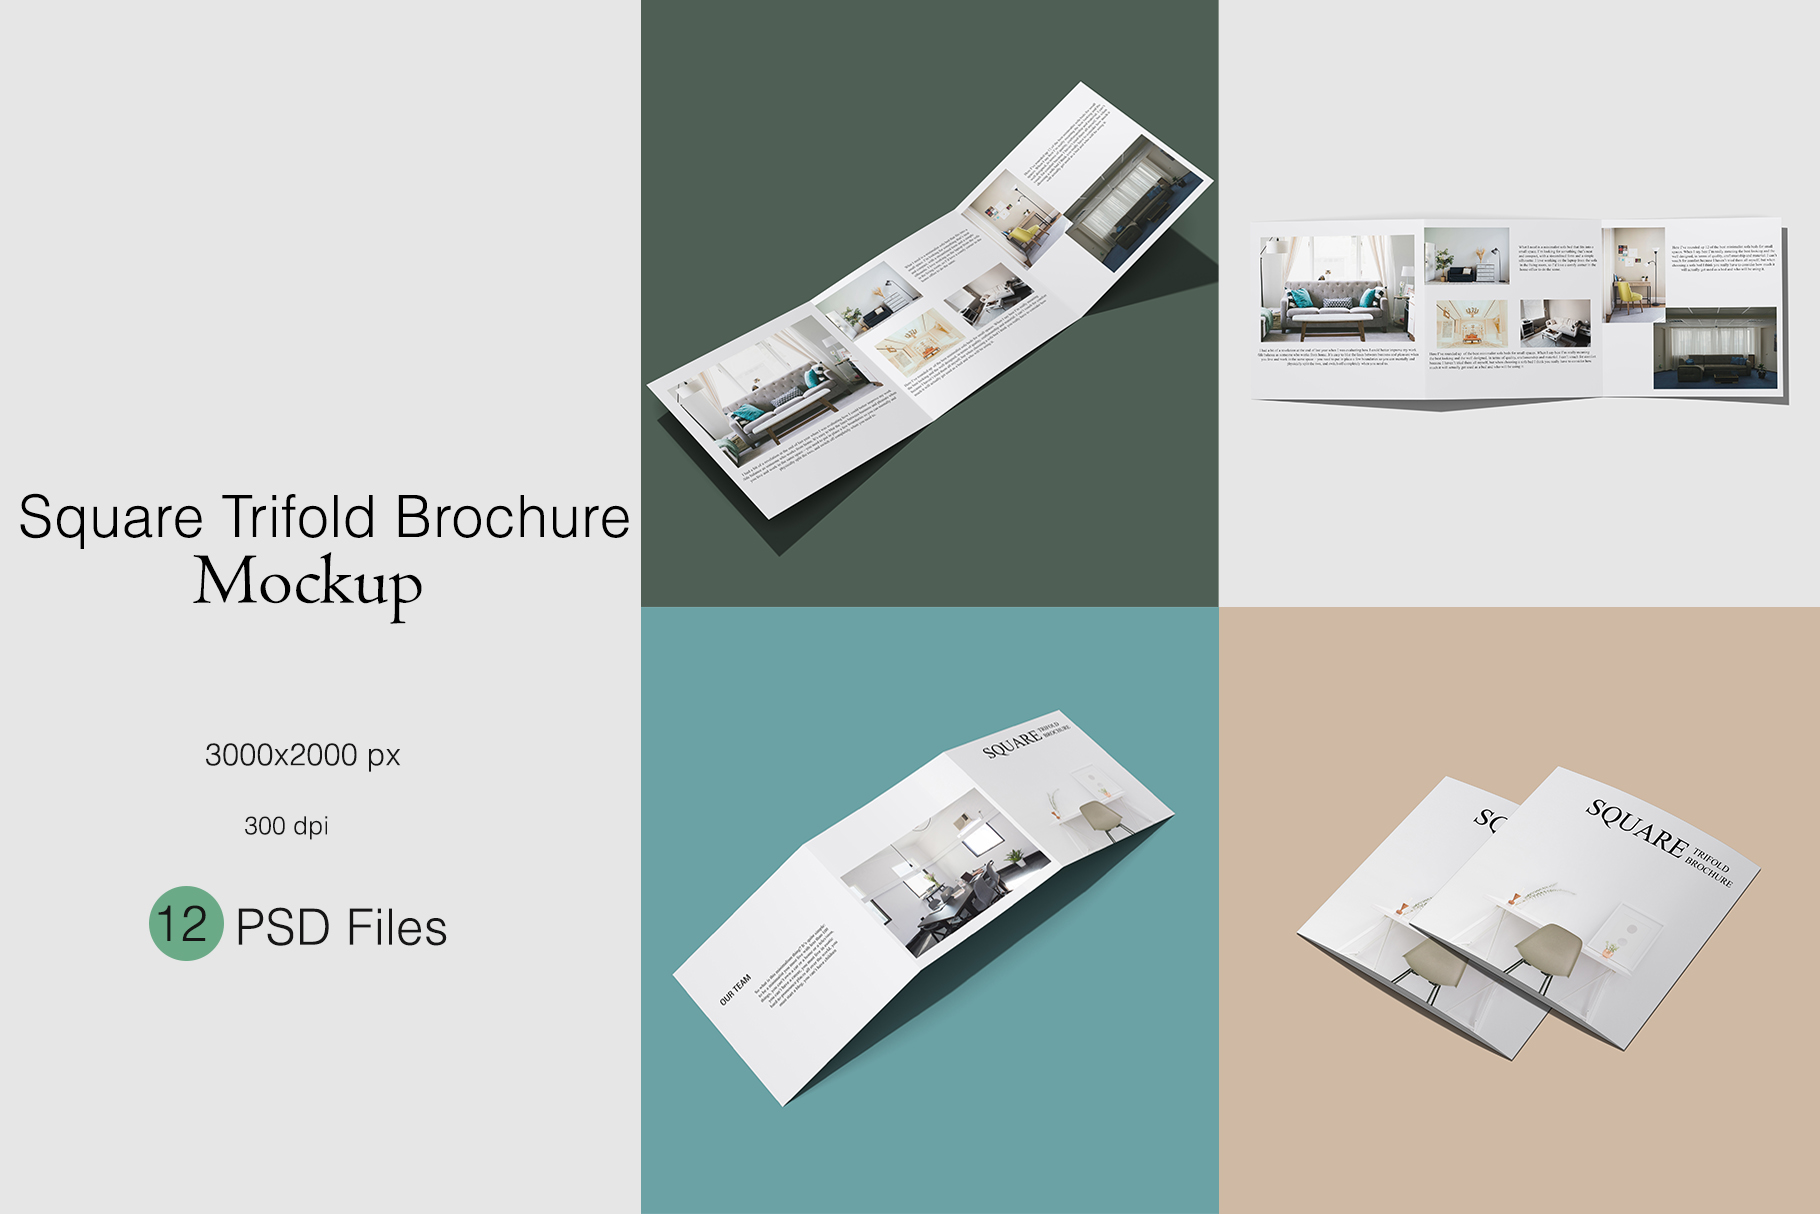 Square Trifold Brochure Mockup example image 1